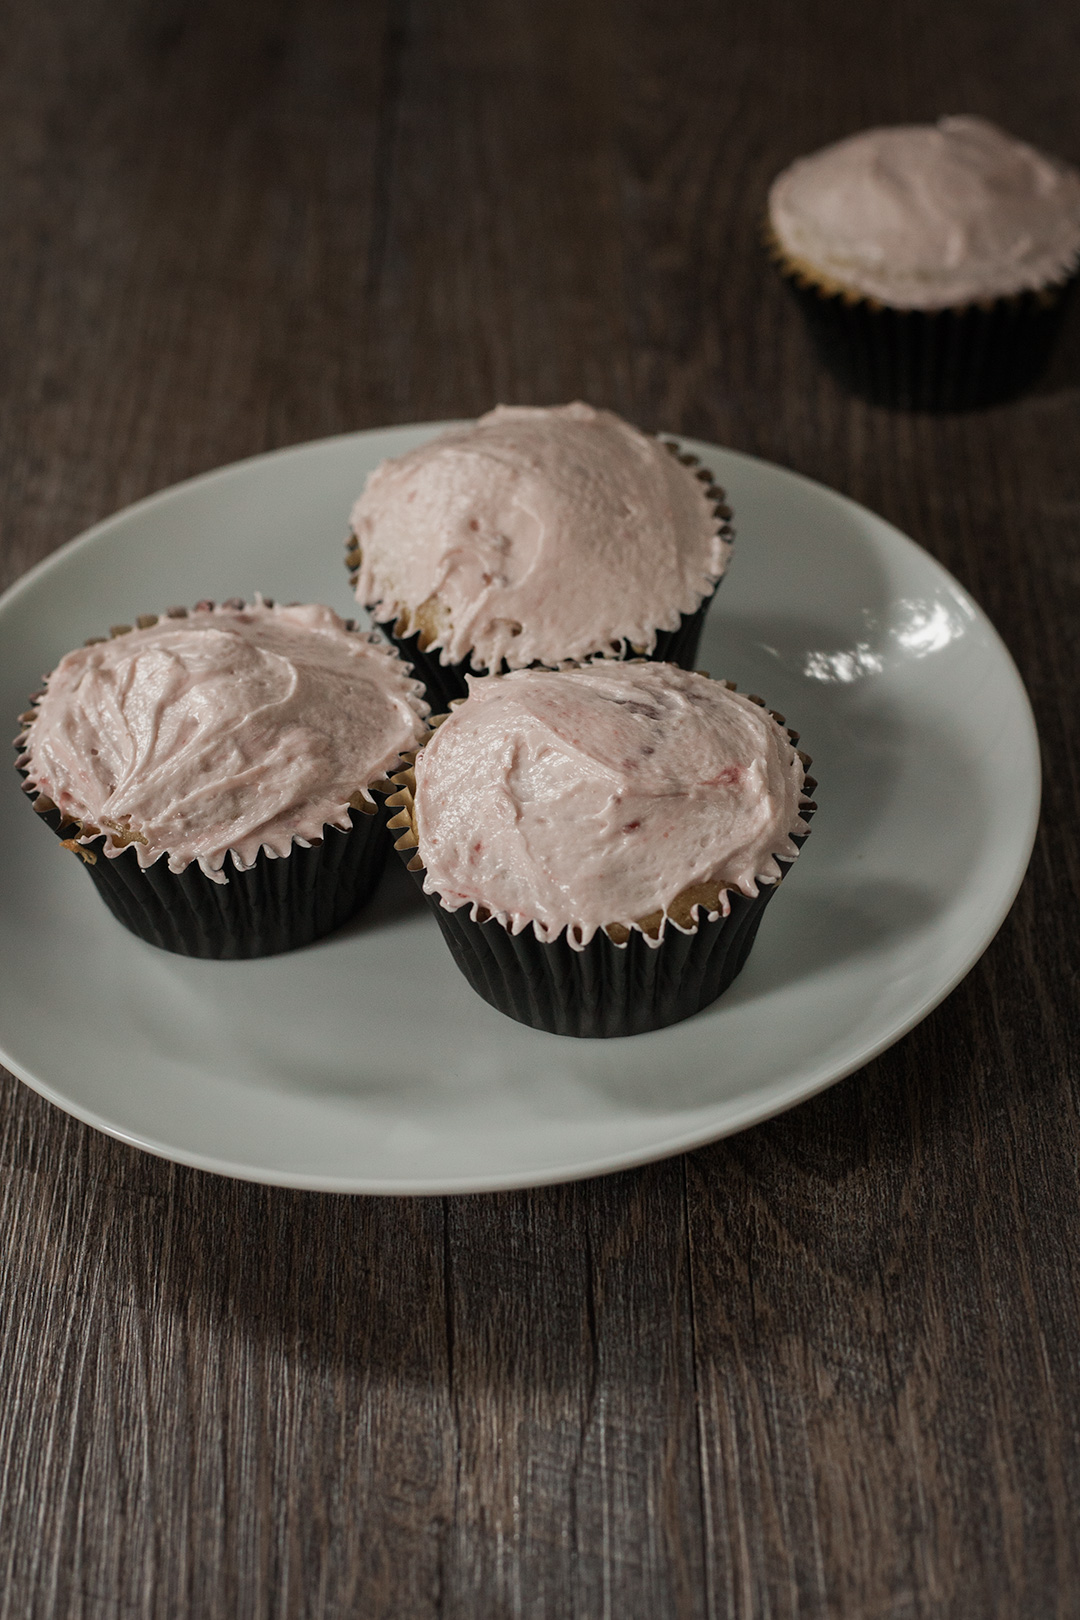 Frosted vegan cupcakes.